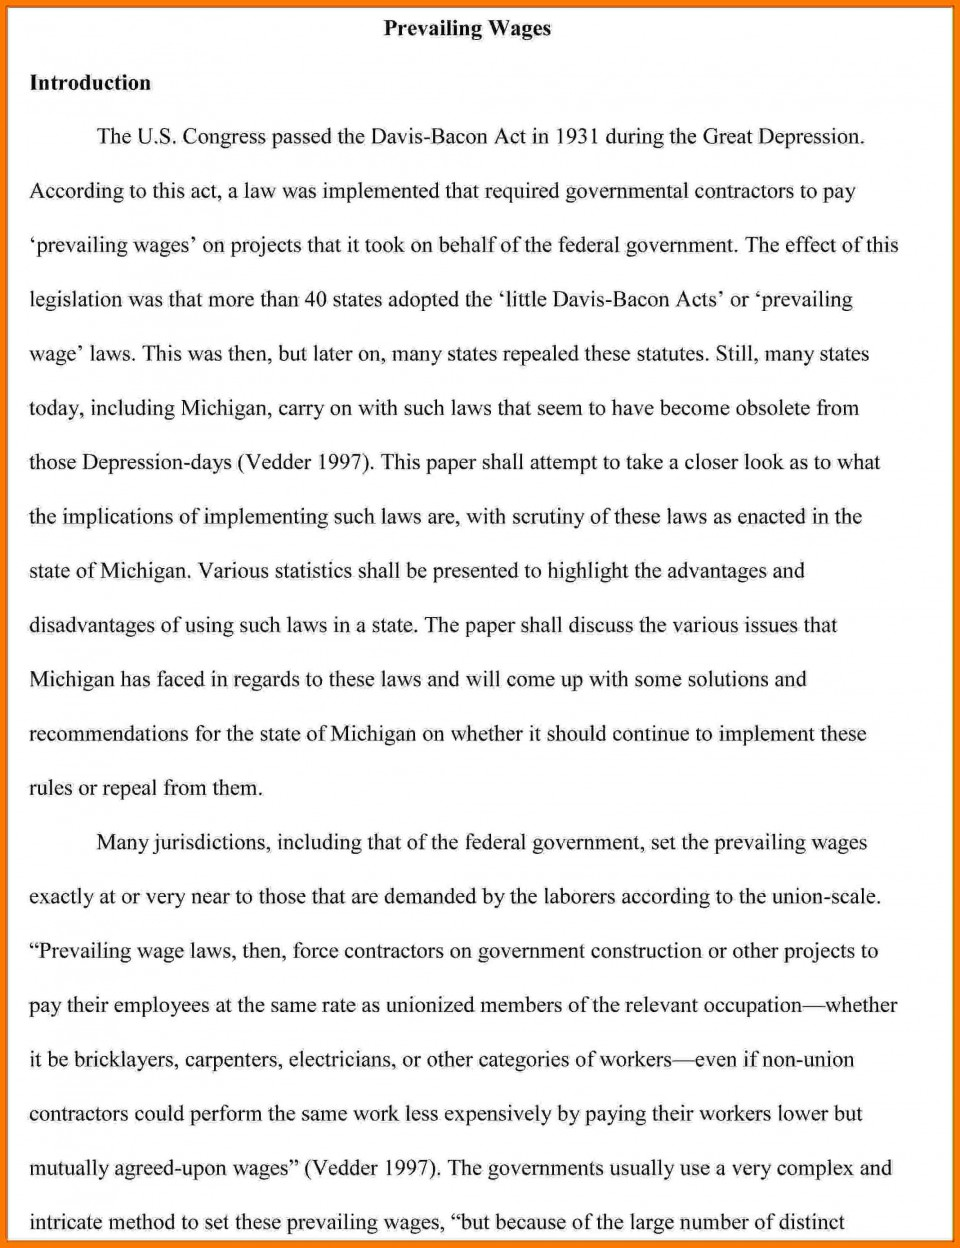 003 Introduction To Research Paper Example Collection Of Solutions Apa Fearsome A How Write An Pdf Paragraph For Mla 960